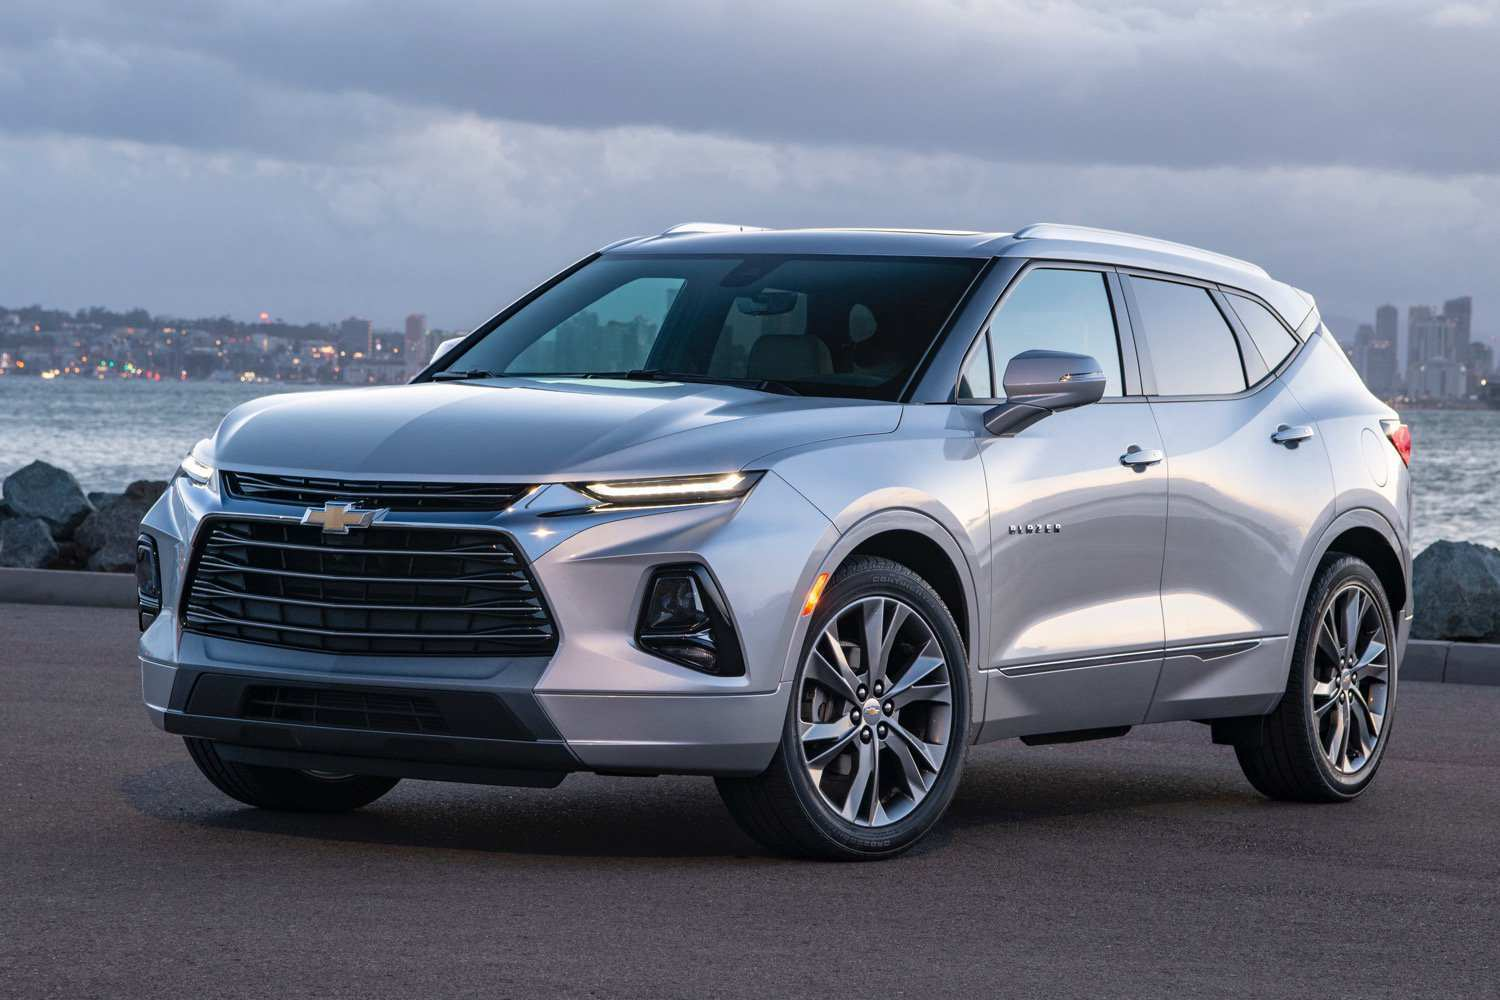 99 All New Chevrolet Equinox 2020 Research New